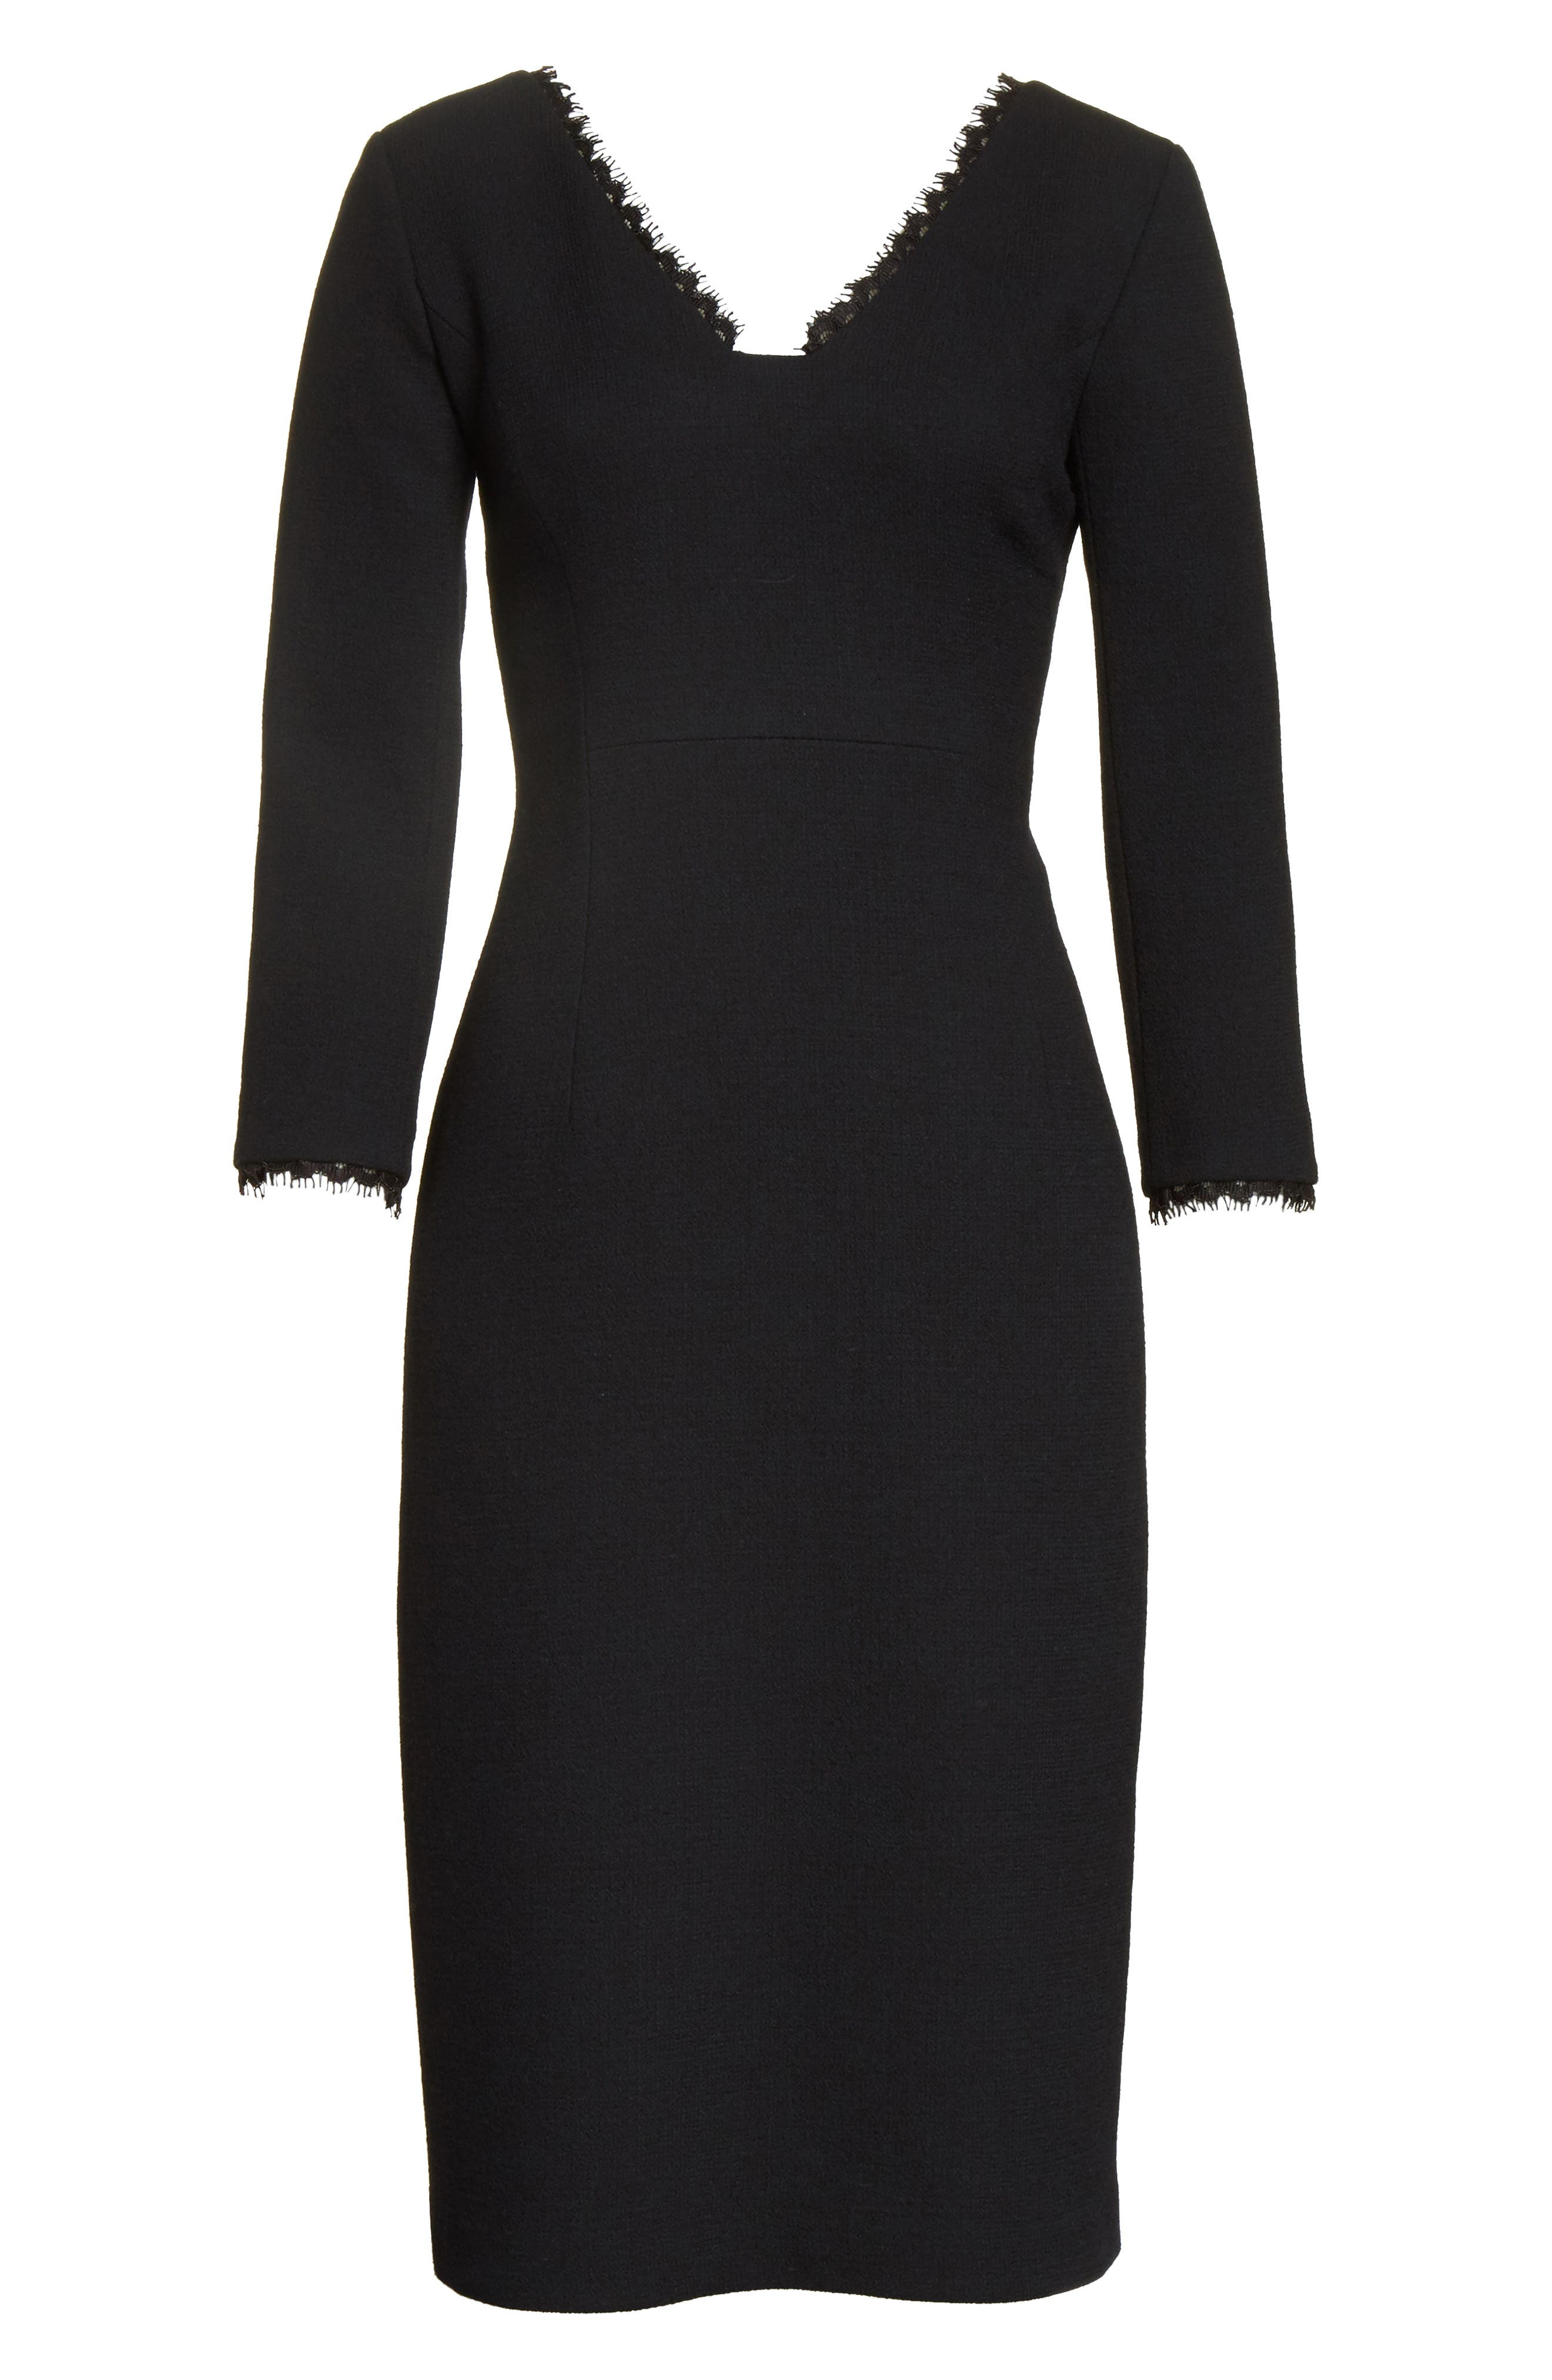 Shandy Lace Trim Wool Dress,                             Alternate thumbnail 6, color,                             001